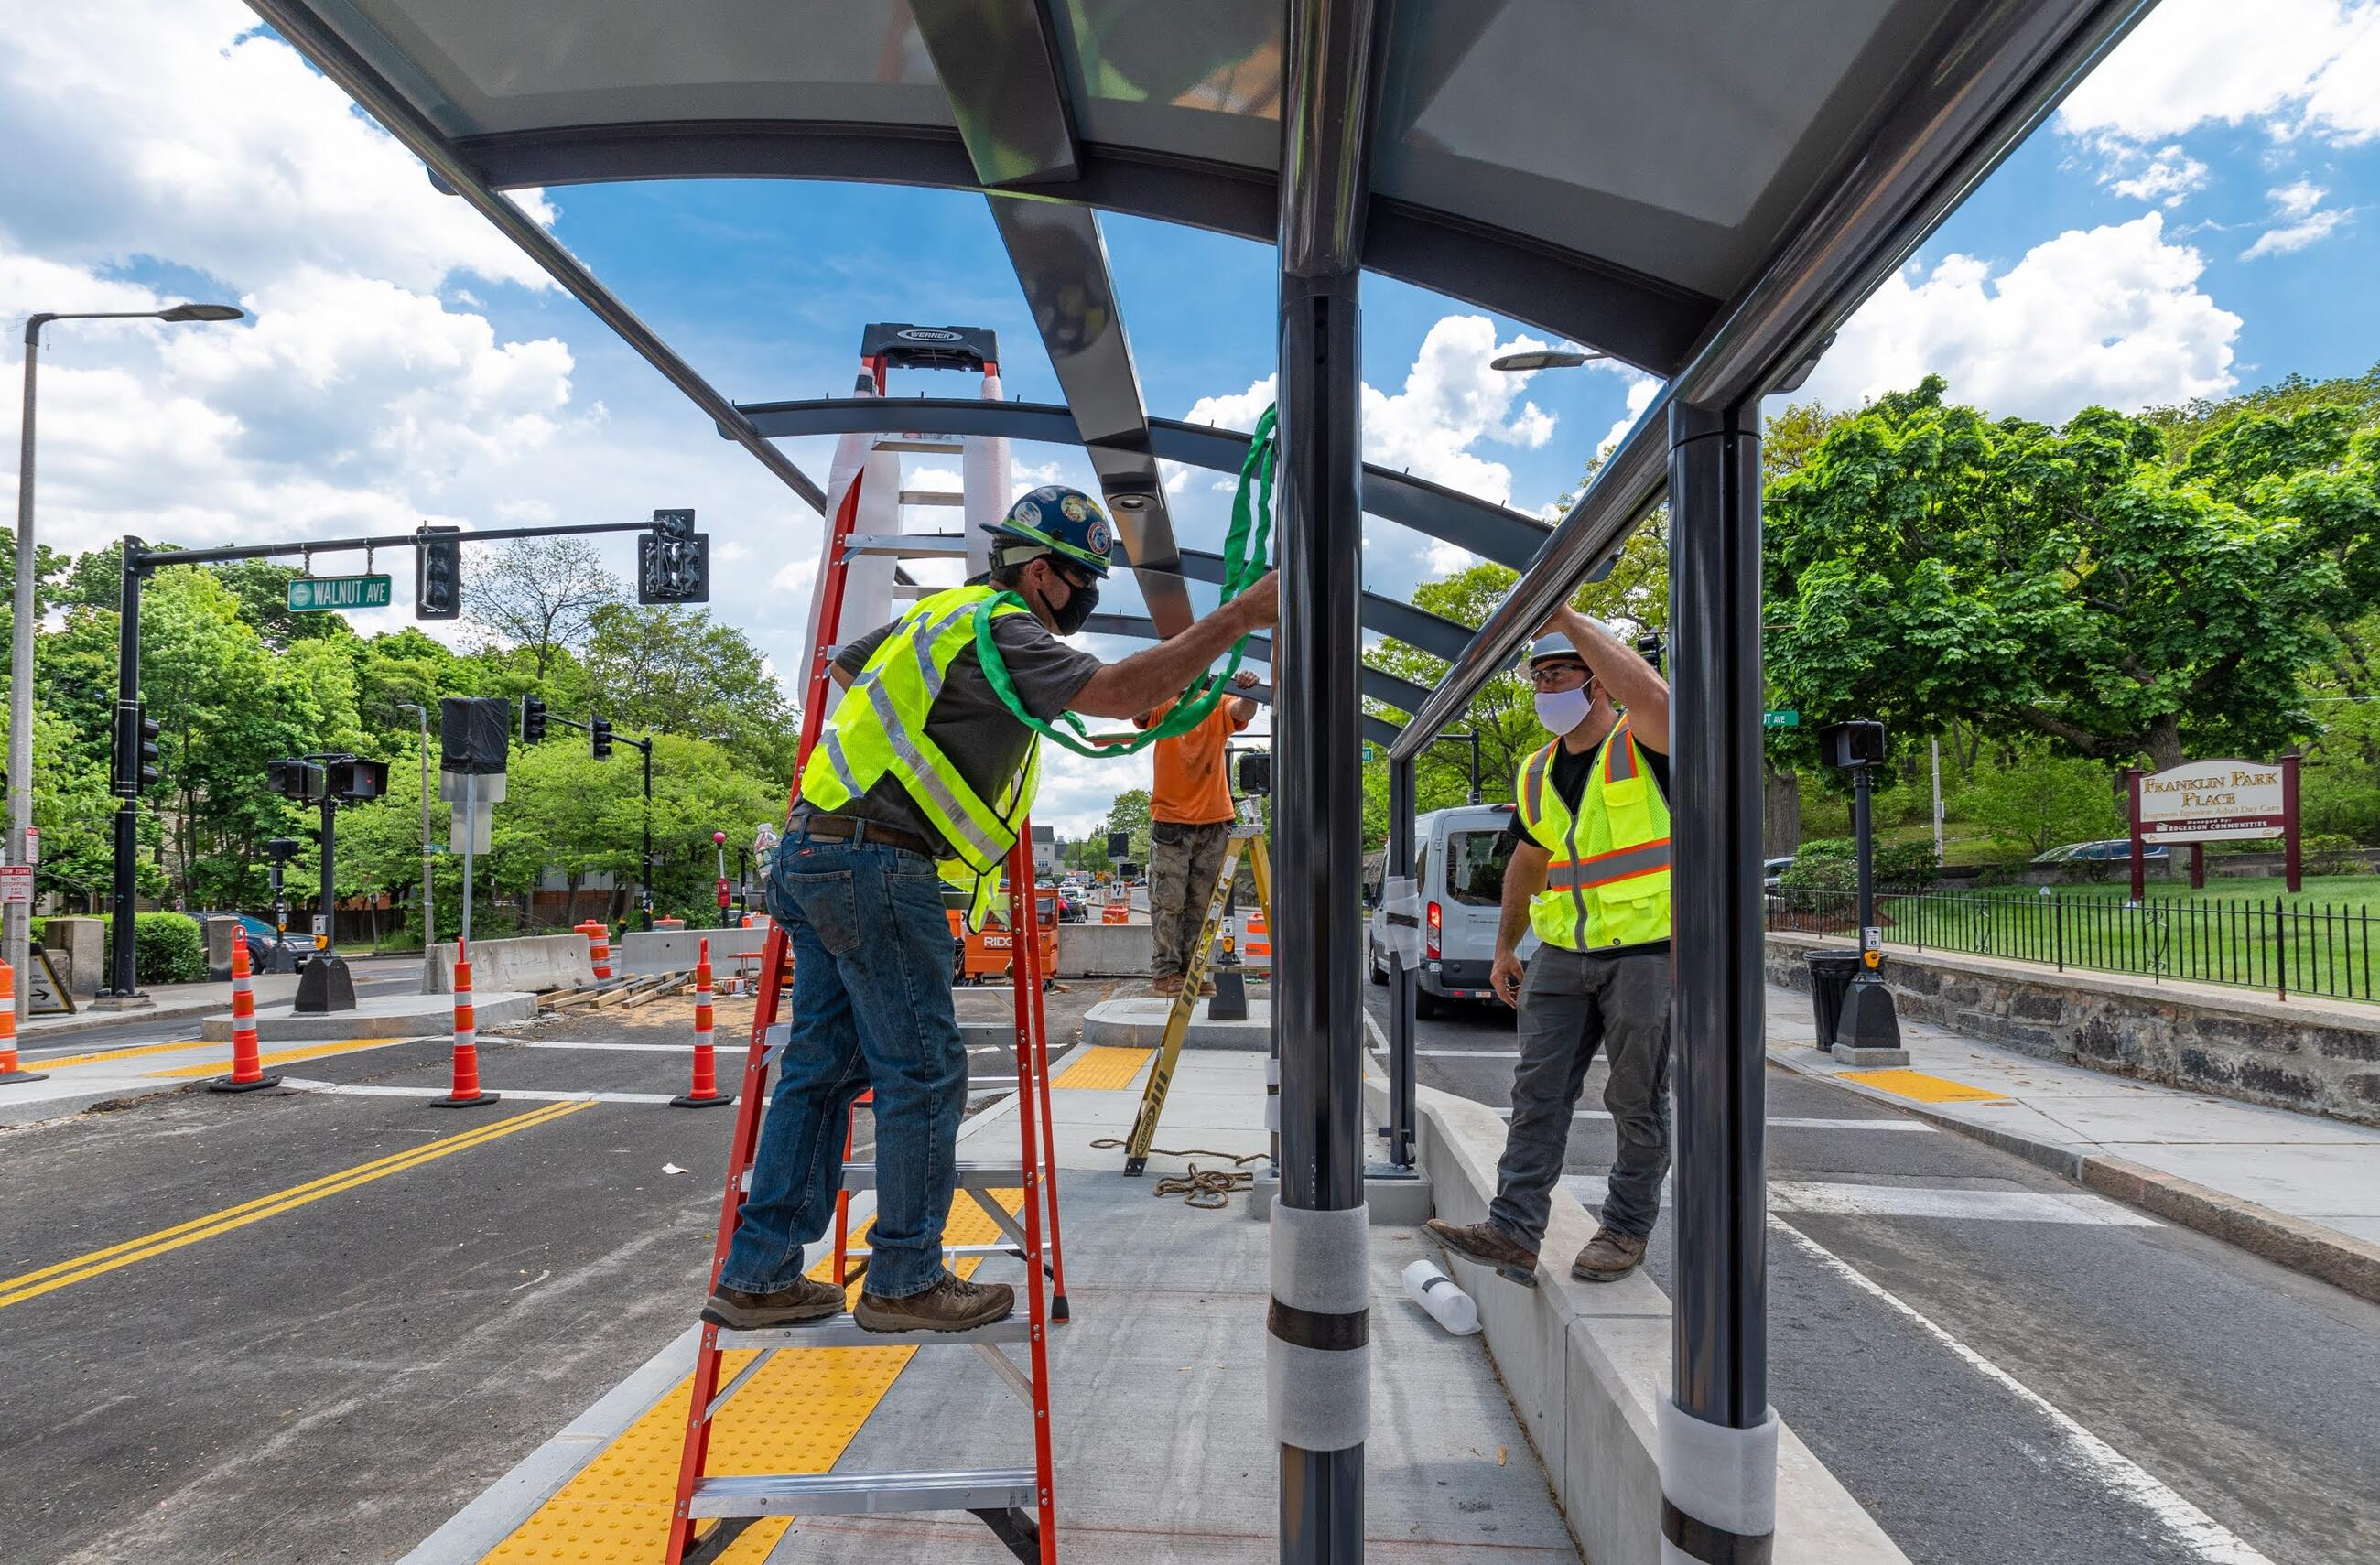 Construction workers in high visibility clothing and hard hats work together to assemble a glass and metal canopy for shelter at the new bus stop